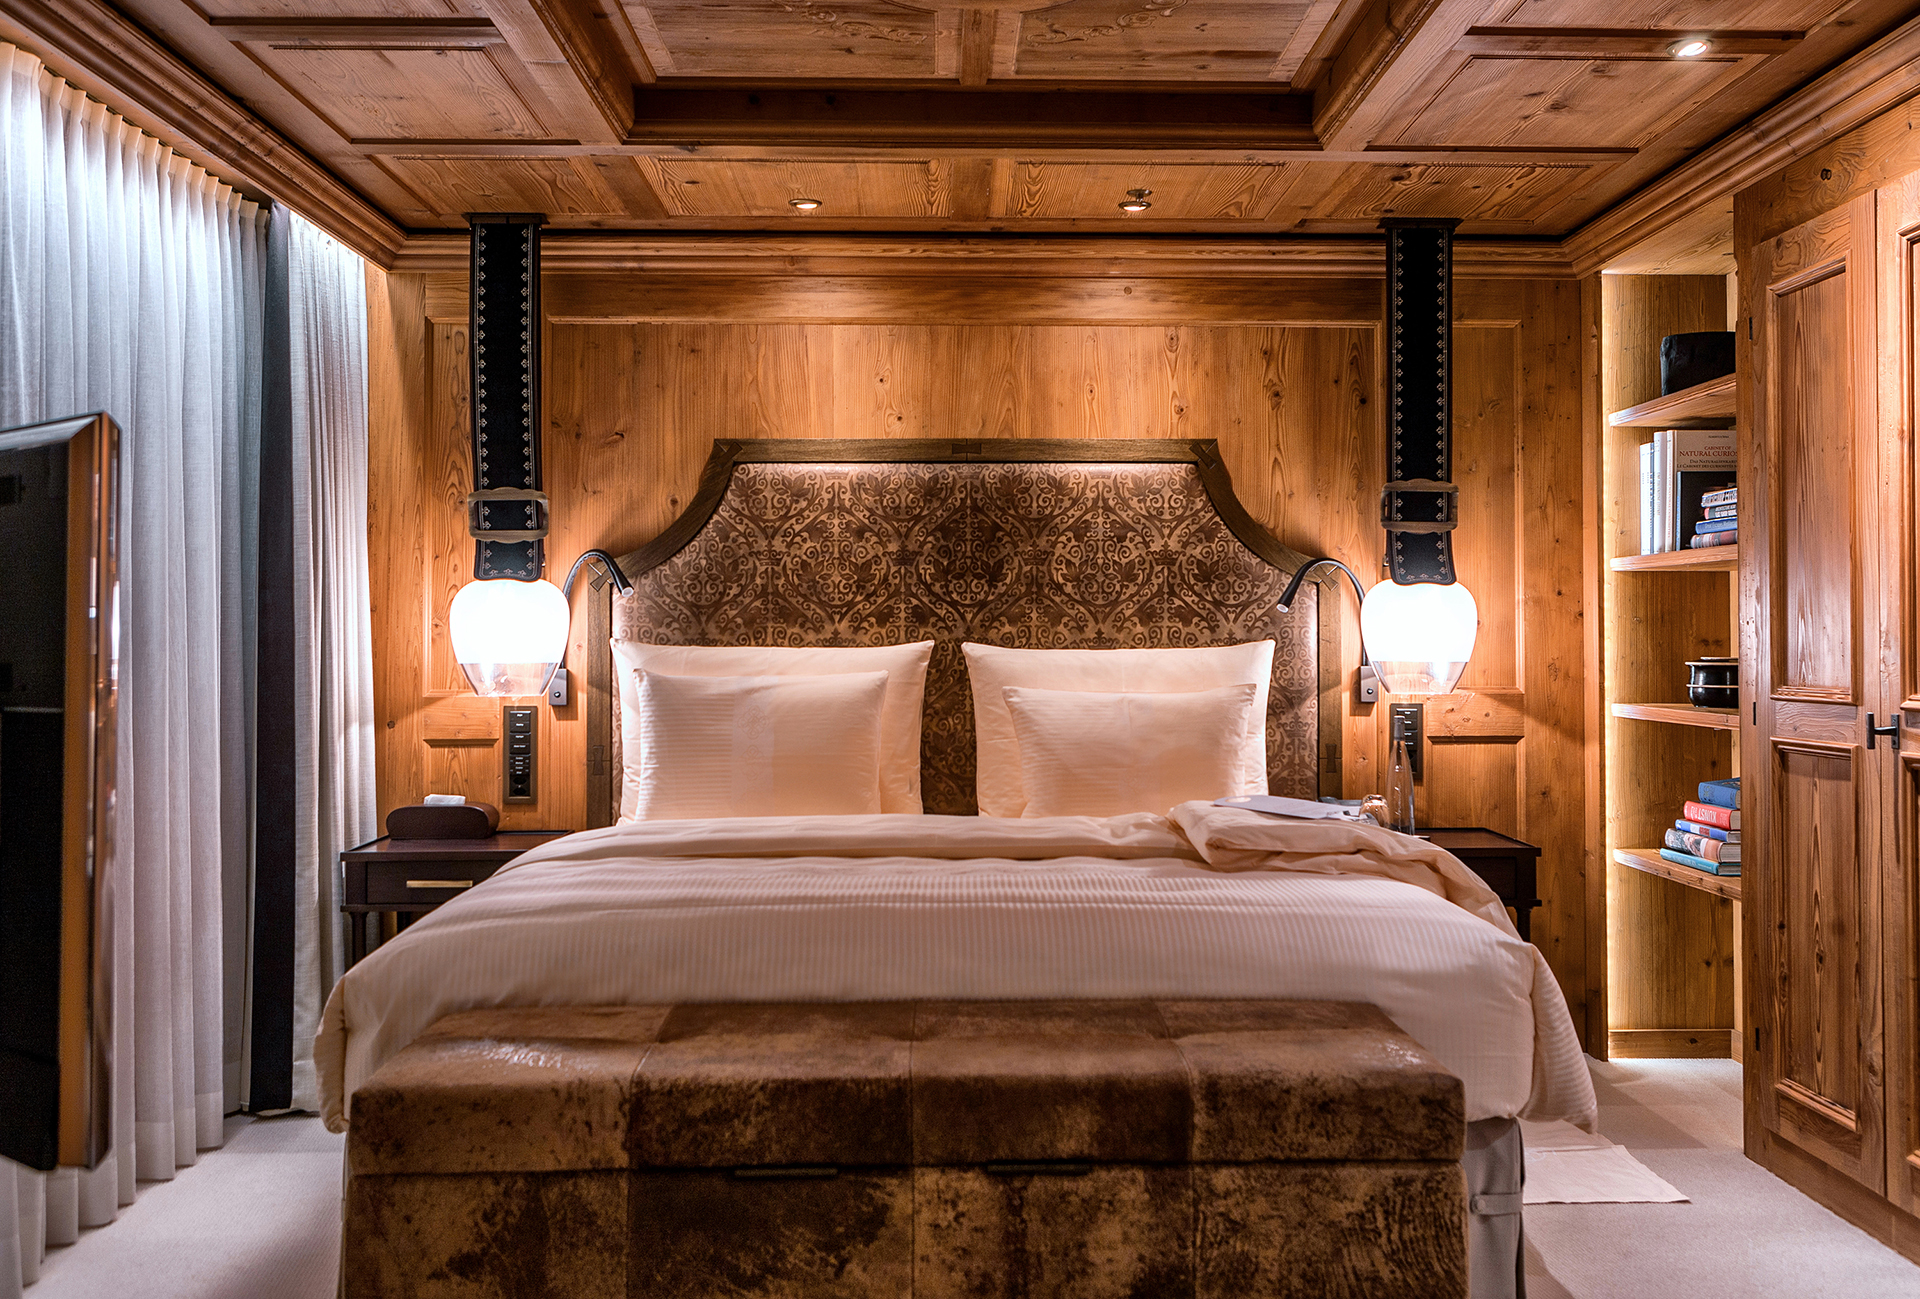 TheAlpinaGstaad_Rooms&Suites_0297_1920.jpg